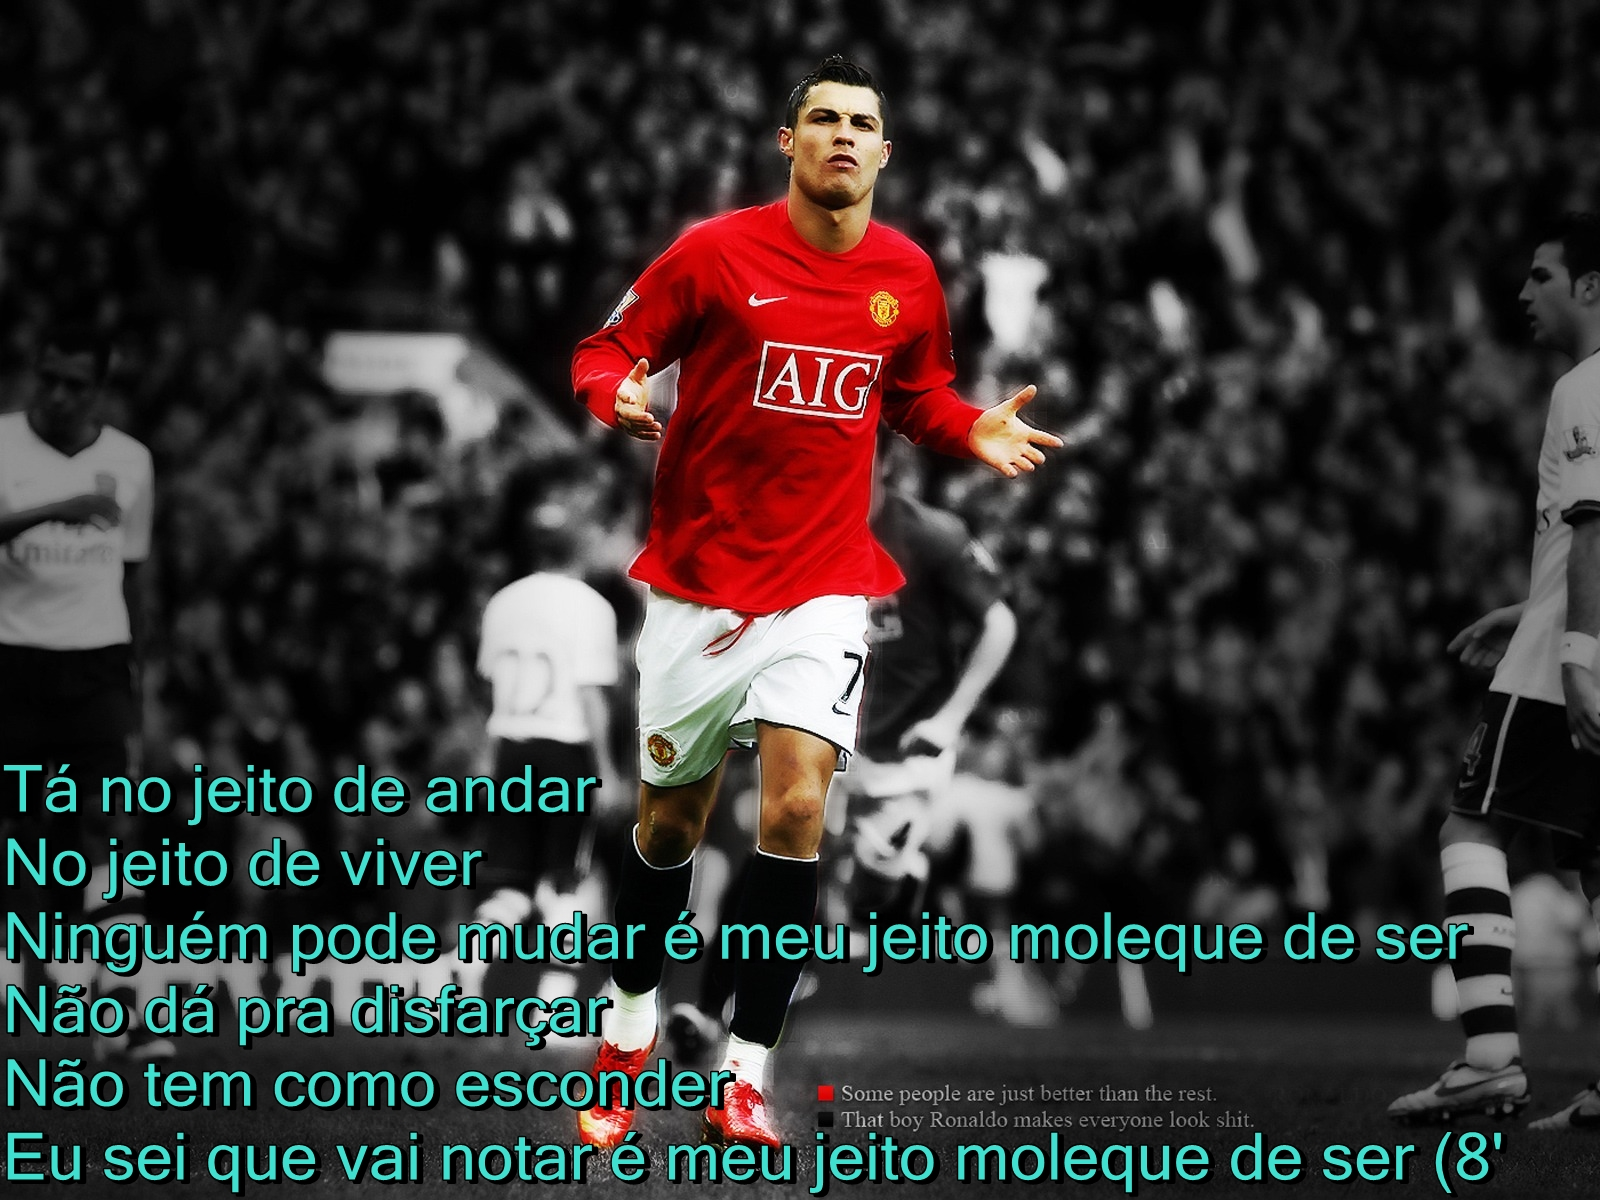 http://2.bp.blogspot.com/-Go7JQlkeArA/T86Ld7opJgI/AAAAAAAAAPI/SQ74a40QBp0/s1600/Sexy-man-football-player-cristiano-ronaldo-wallpapers-cristiano-ronaldo-wallpaper-hd-1.jpg